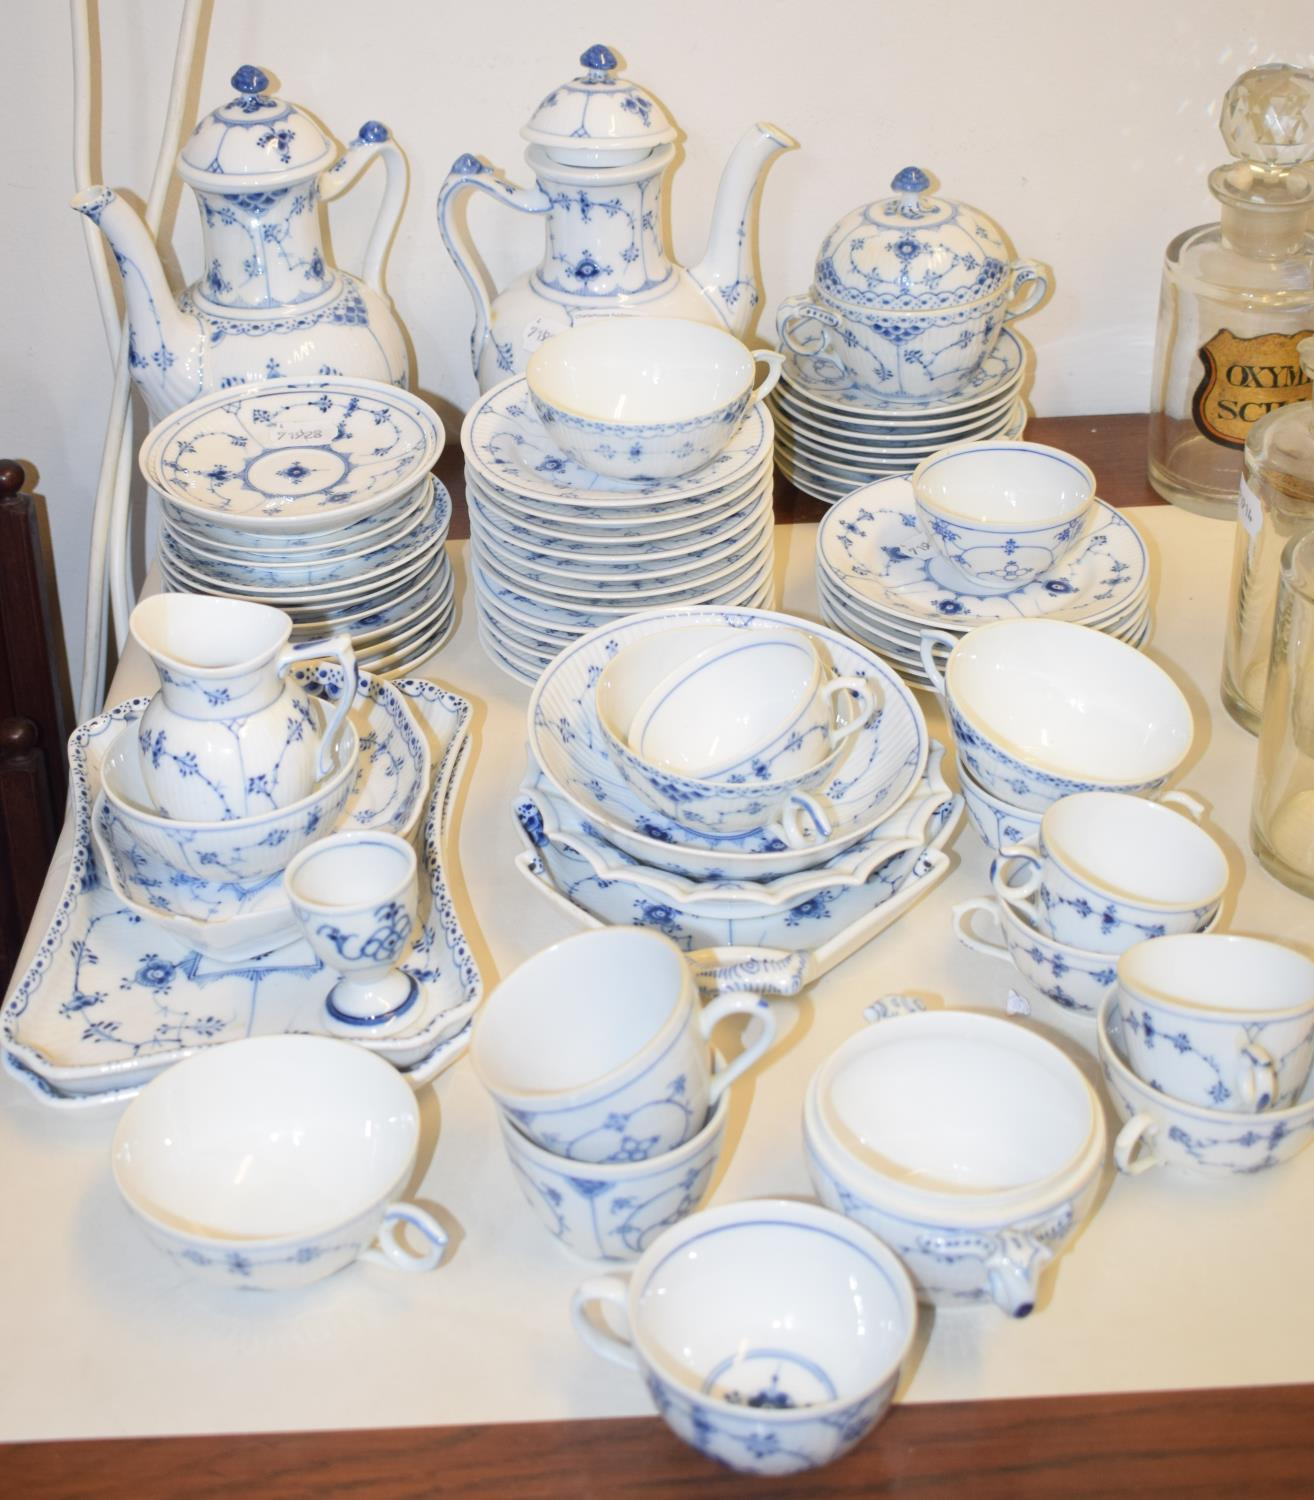 Lot 1 - A Royal Copenhagen part tea and coffee service, and other similar items (qty)